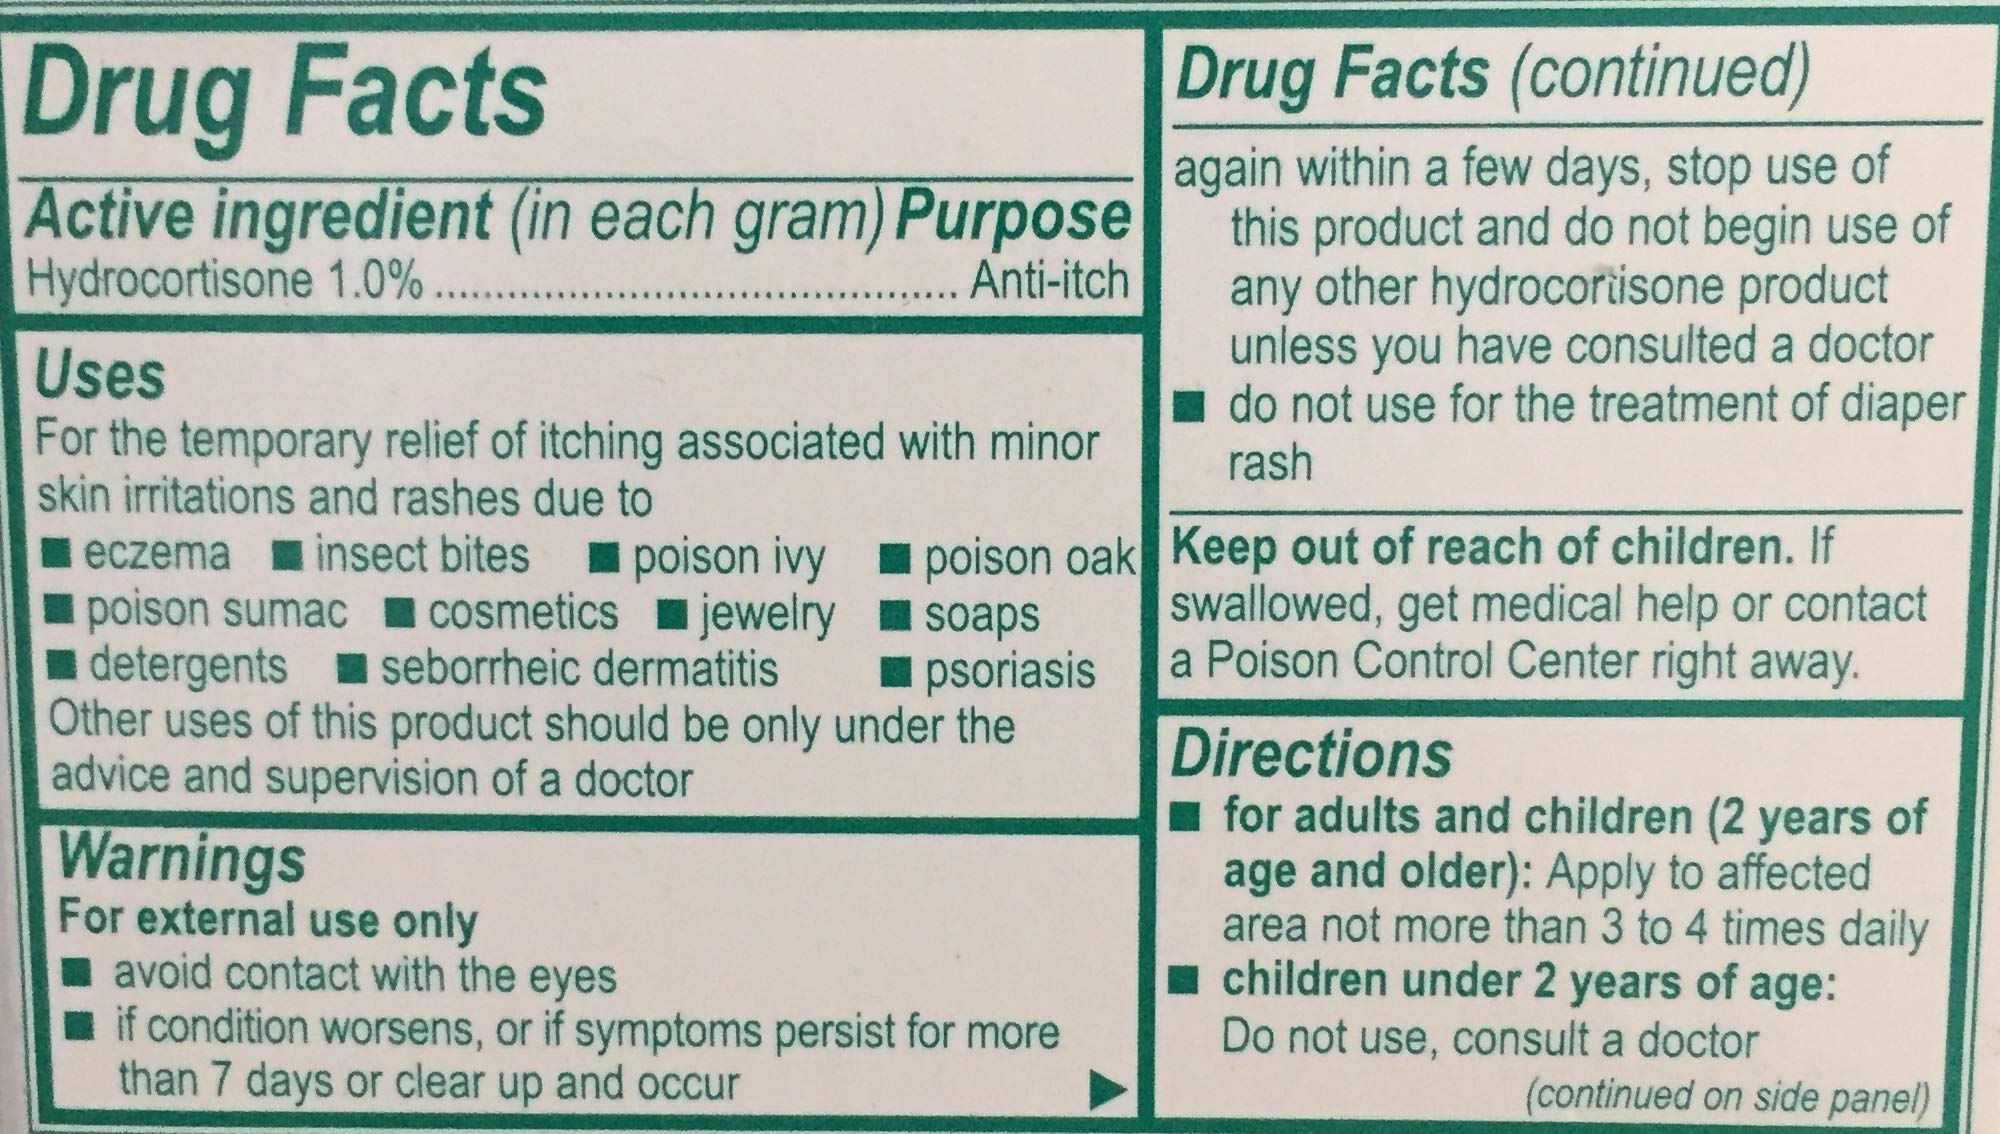 Medi-First Anti-Itch Cream, 1% Hydrocortisone, Maximum Strength, 1/32 Ounce - MS60725 (100 Packets) by Medi-First